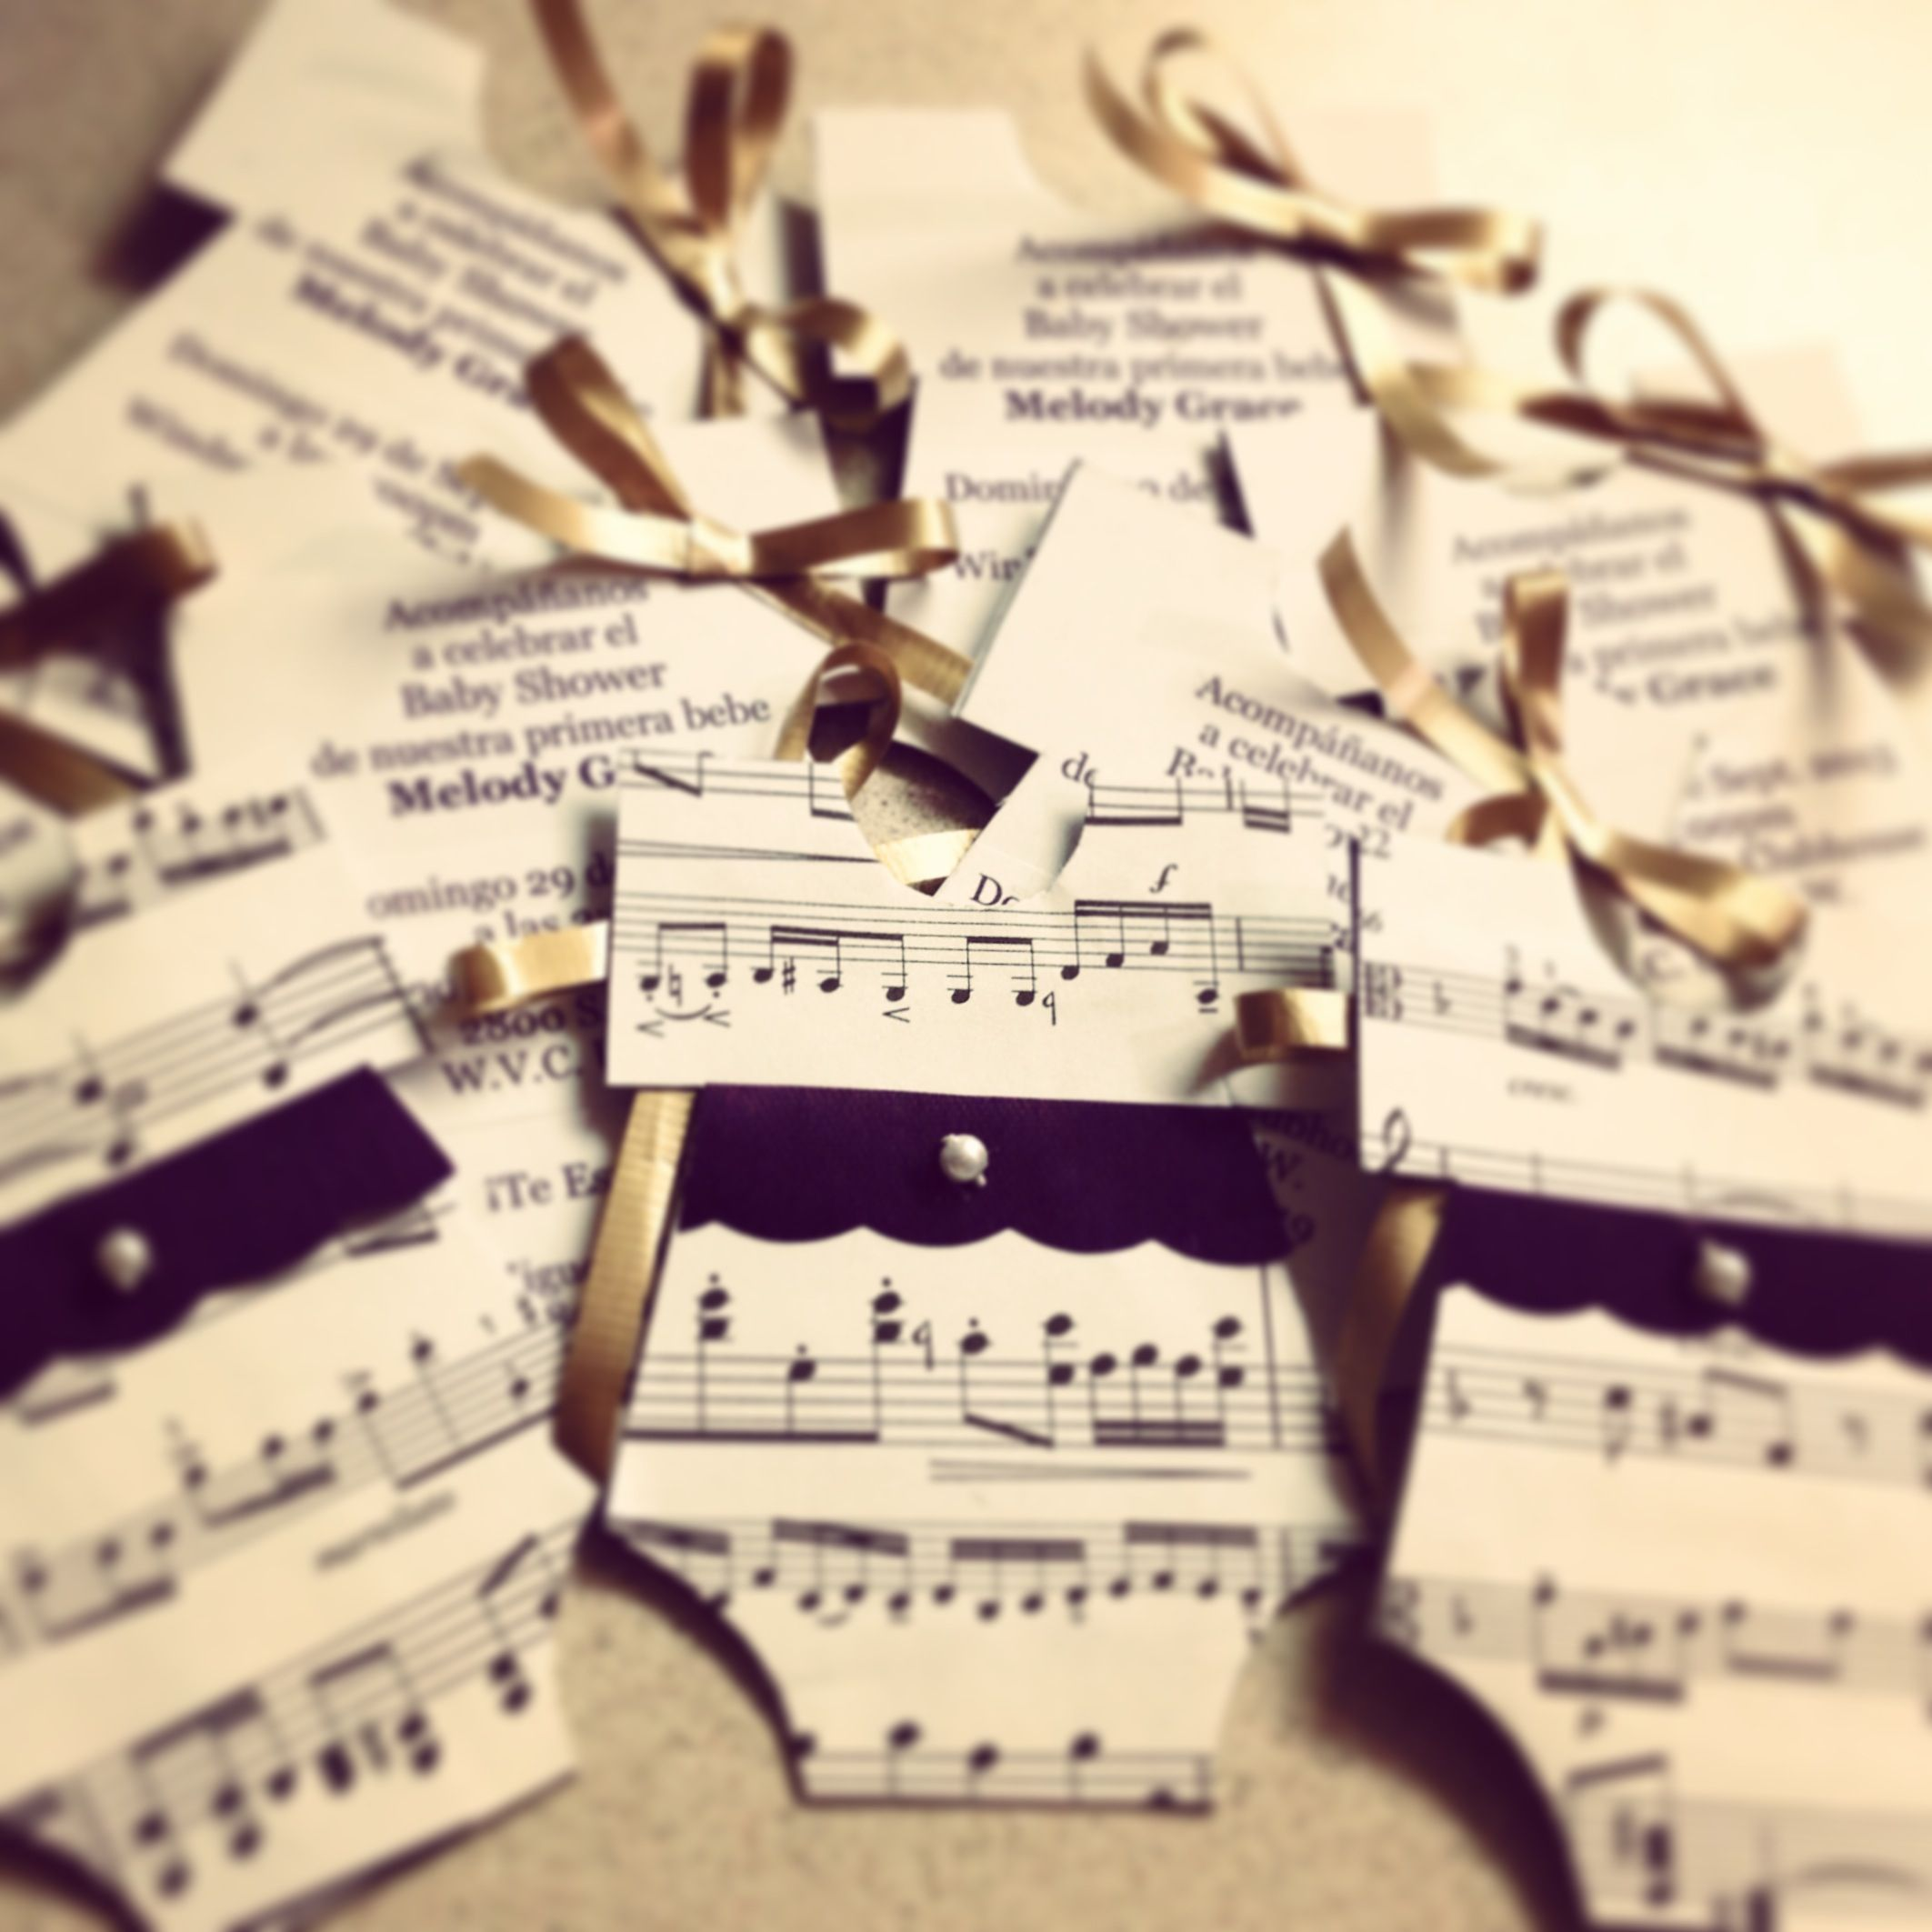 Gmail theme music - Music Sheet Invitations I Made These For My Baby Shower I M Naming My Daughter Melody And My Baby Shower Theme Is Musical I Totally Enjoyed Making My